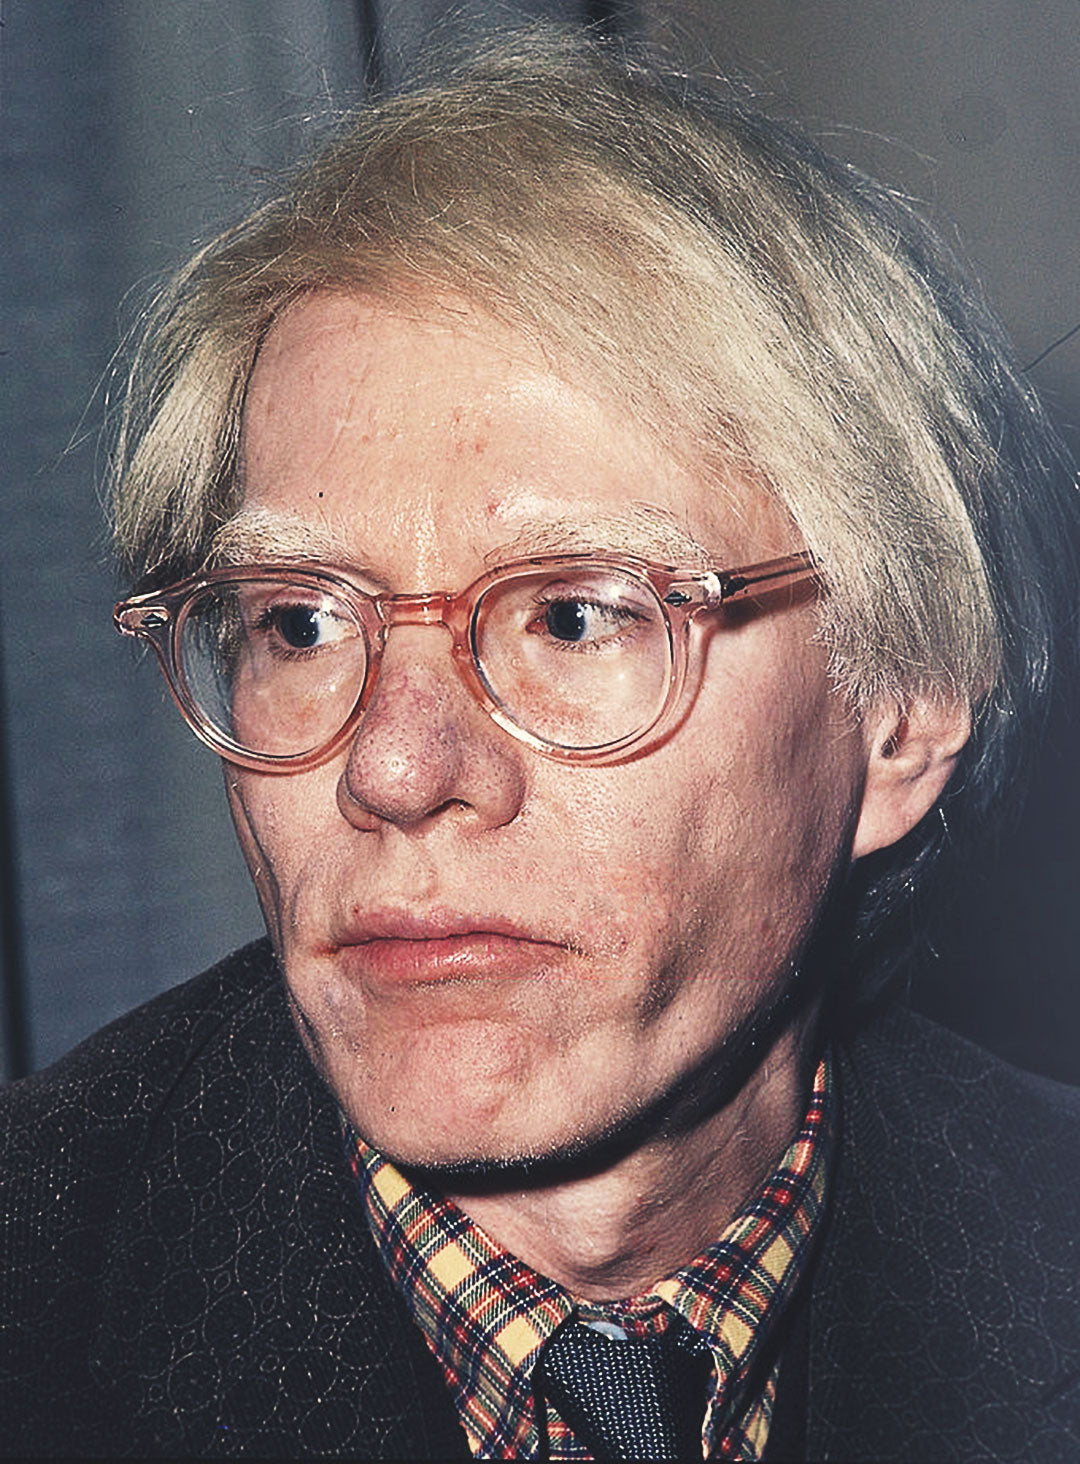 Andy Warhol wearing transparent pink glasses